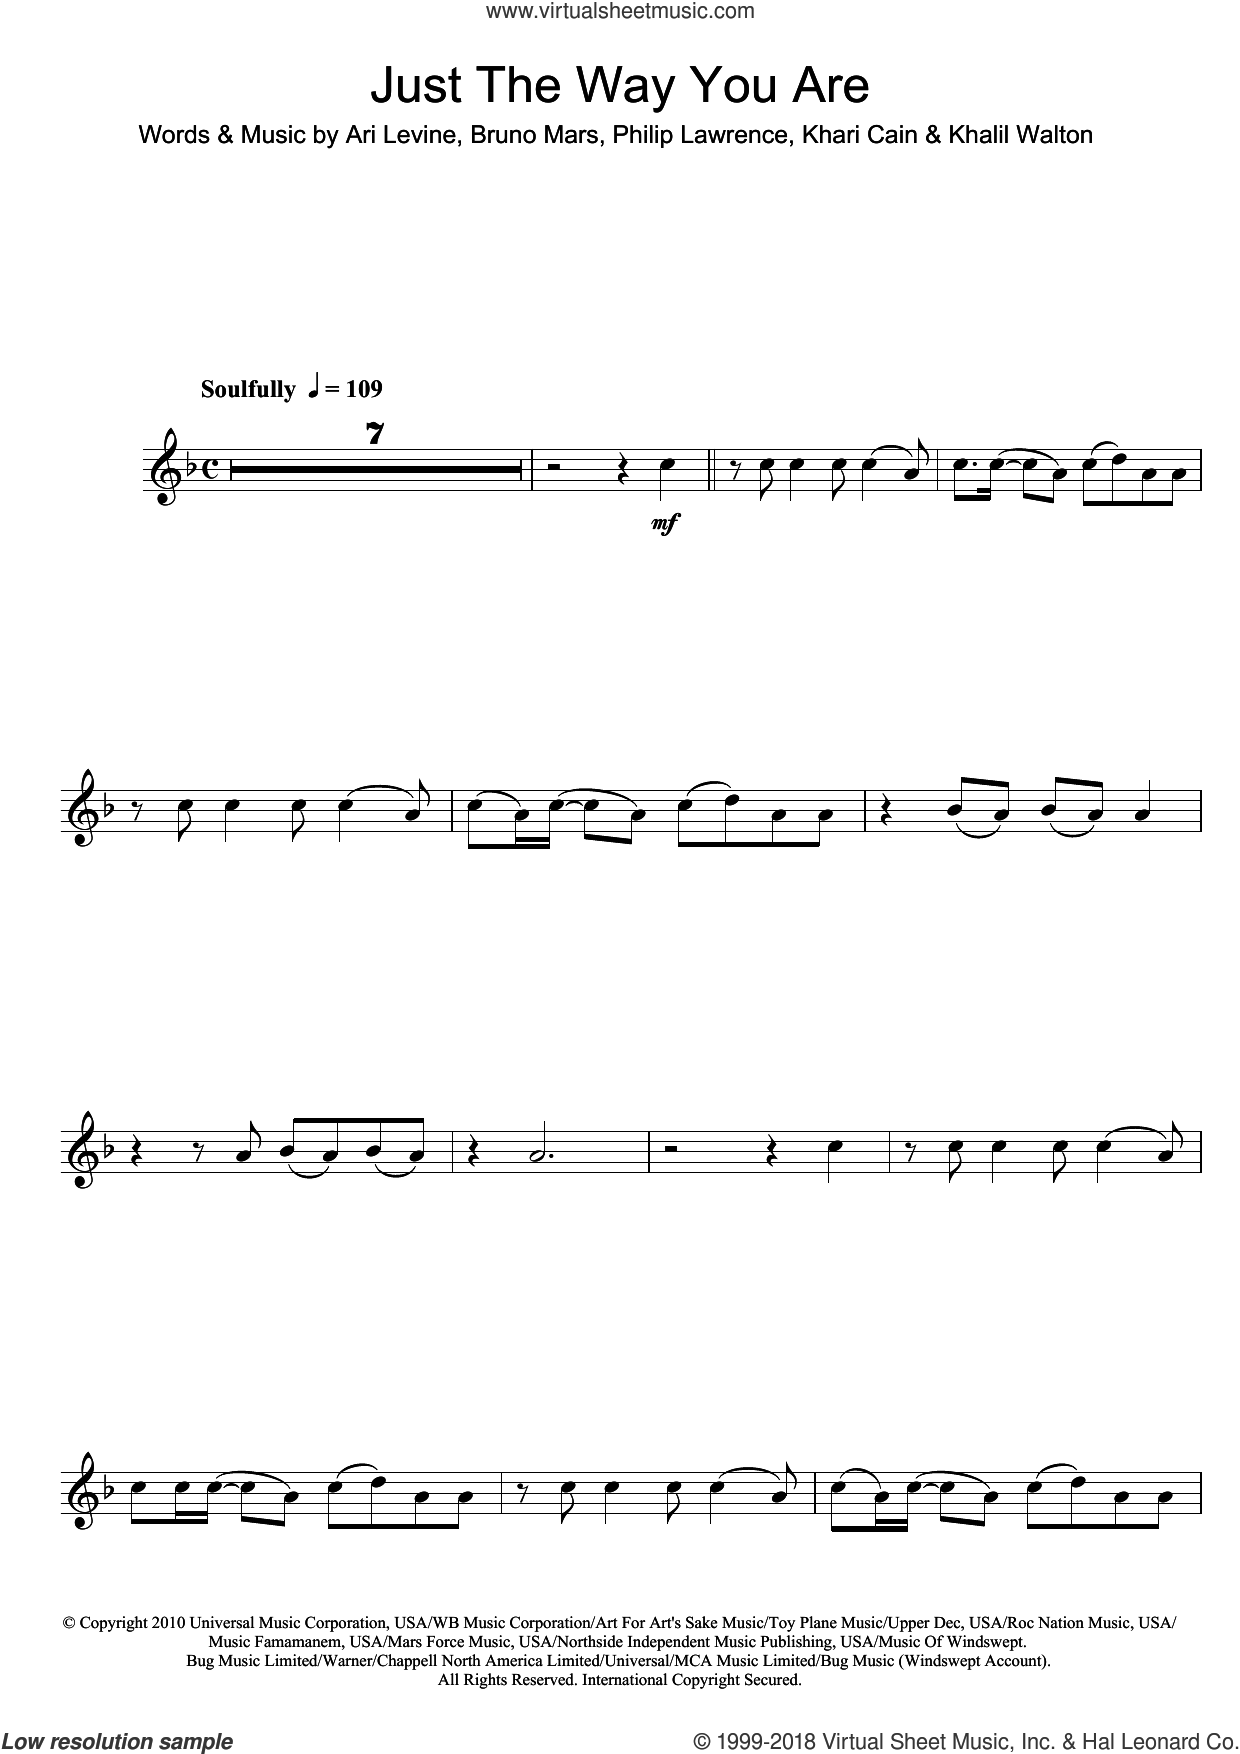 Just The Way You Are sheet music for flute solo by Philip Lawrence, Ari Levine, Bruno Mars, Khalil Walton and Khari Cain. Score Image Preview.